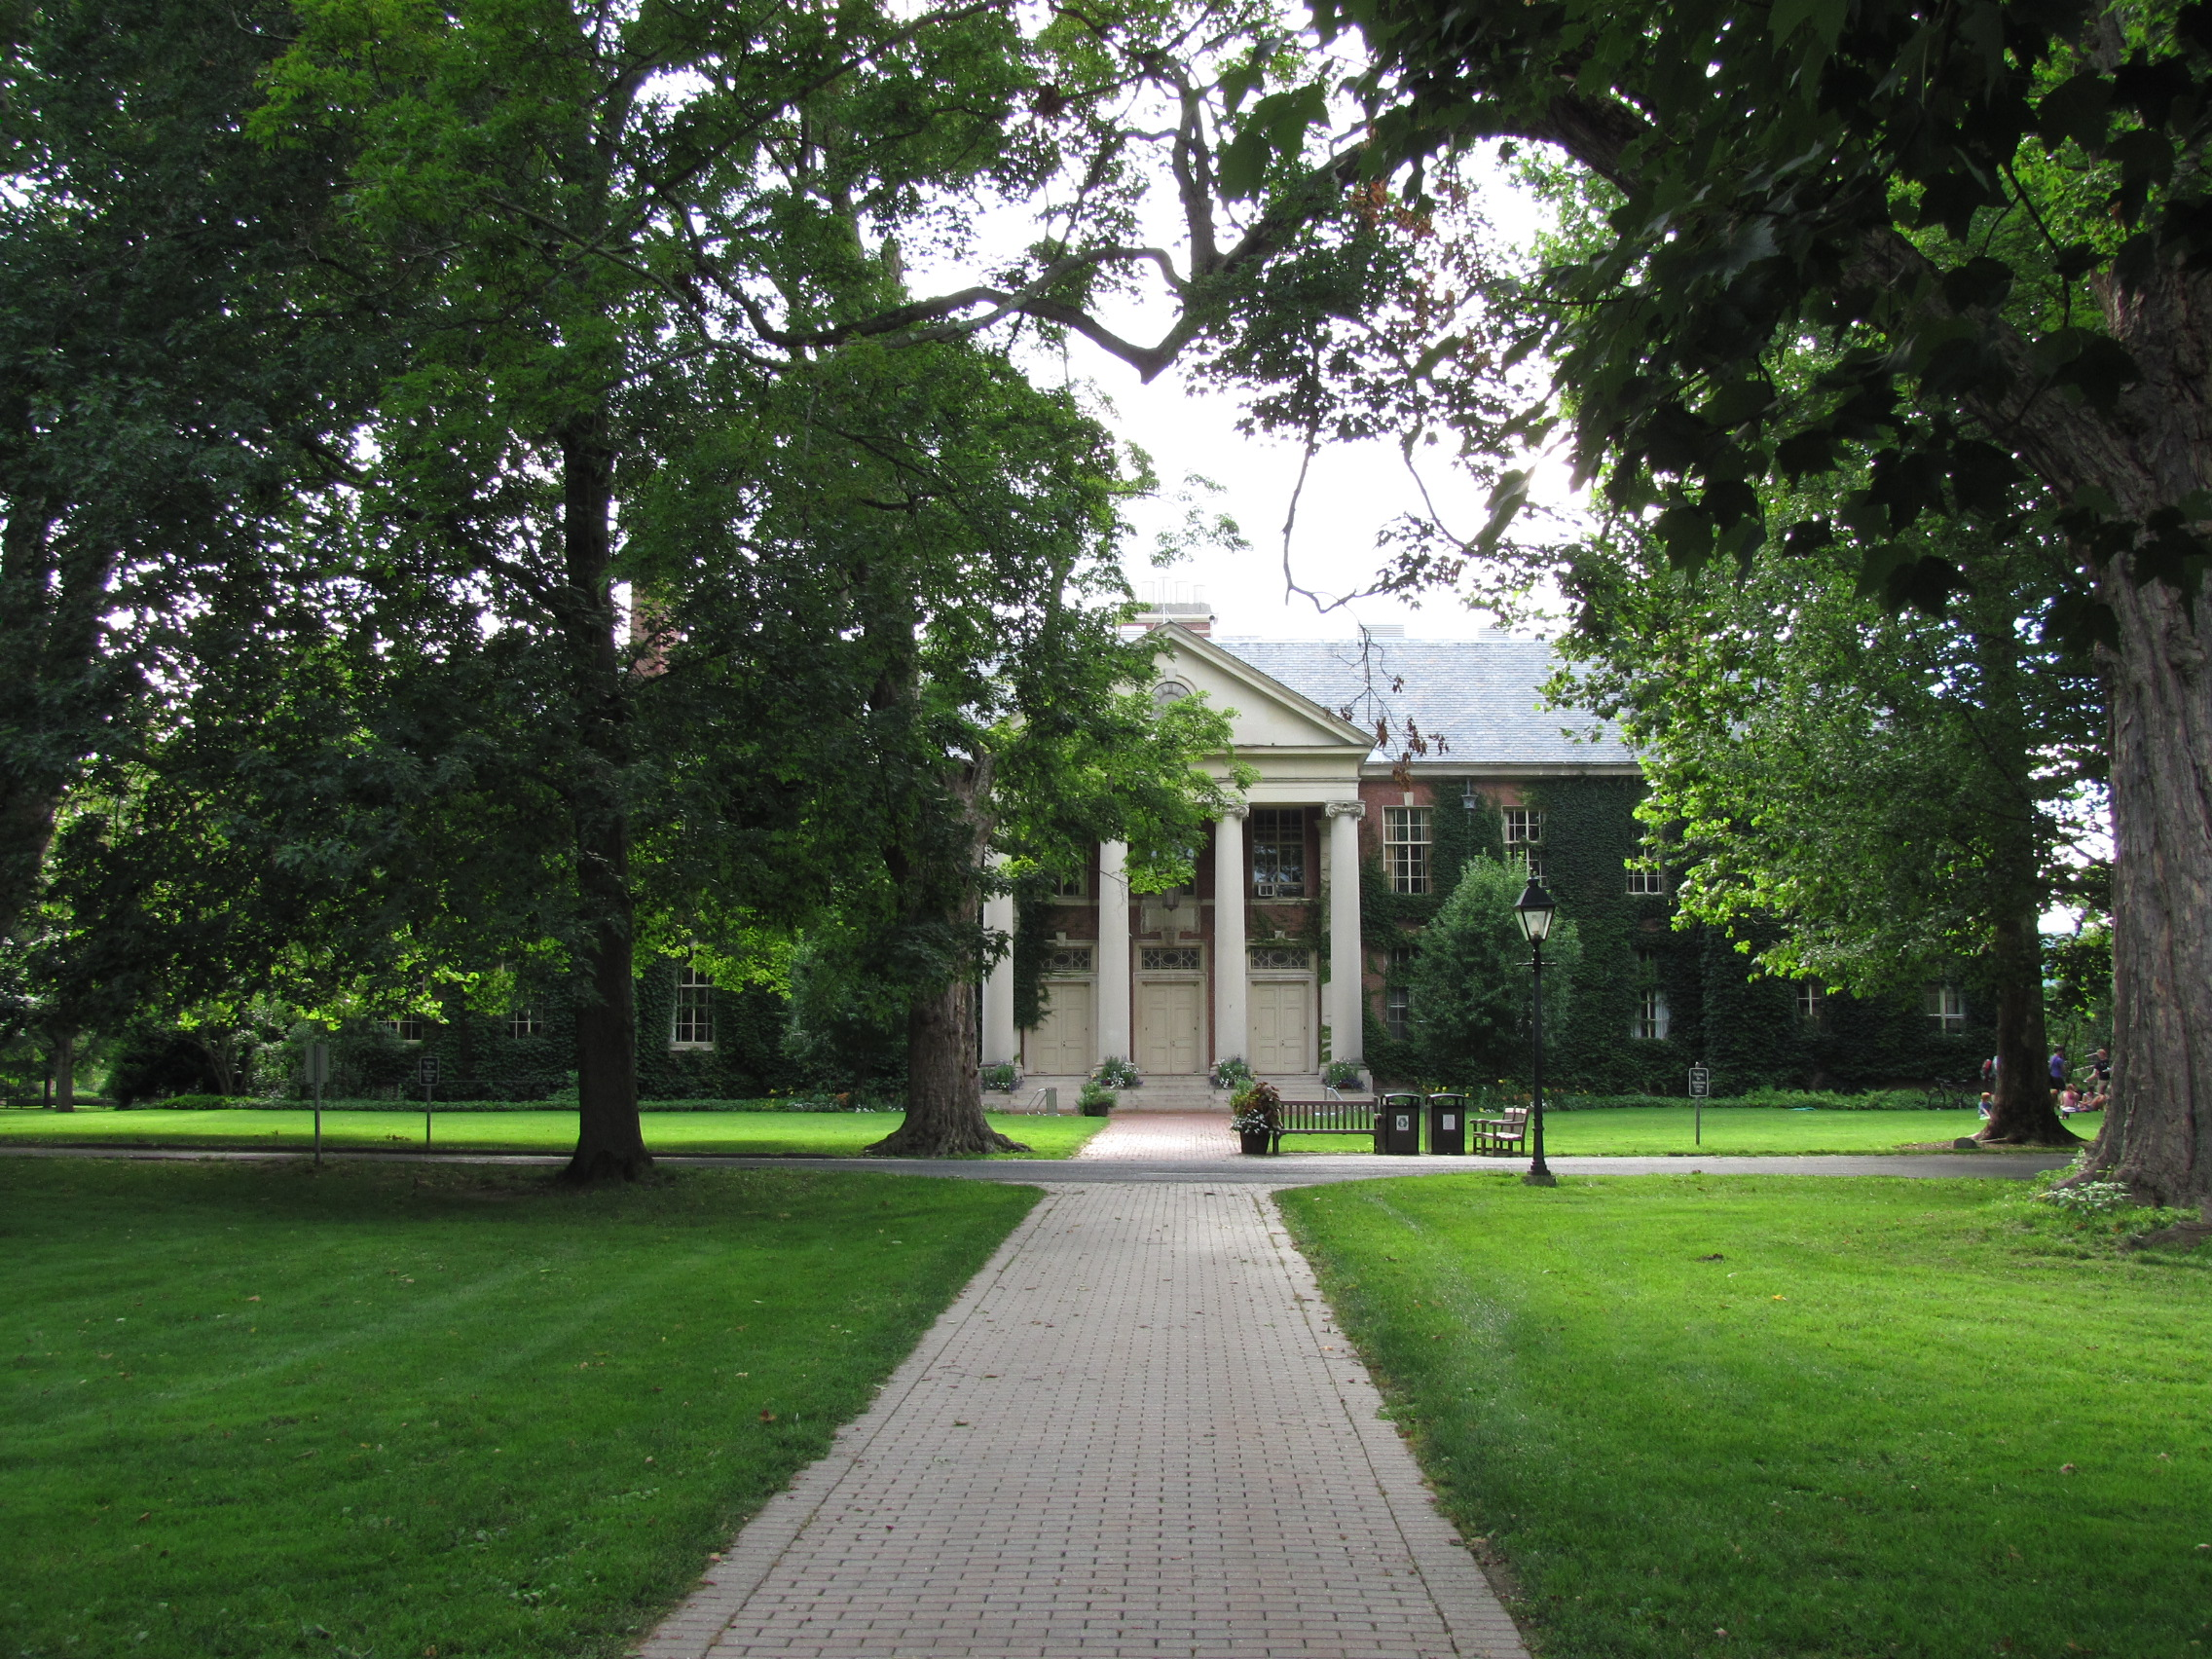 Old school deerfield academy places i have been worth going back